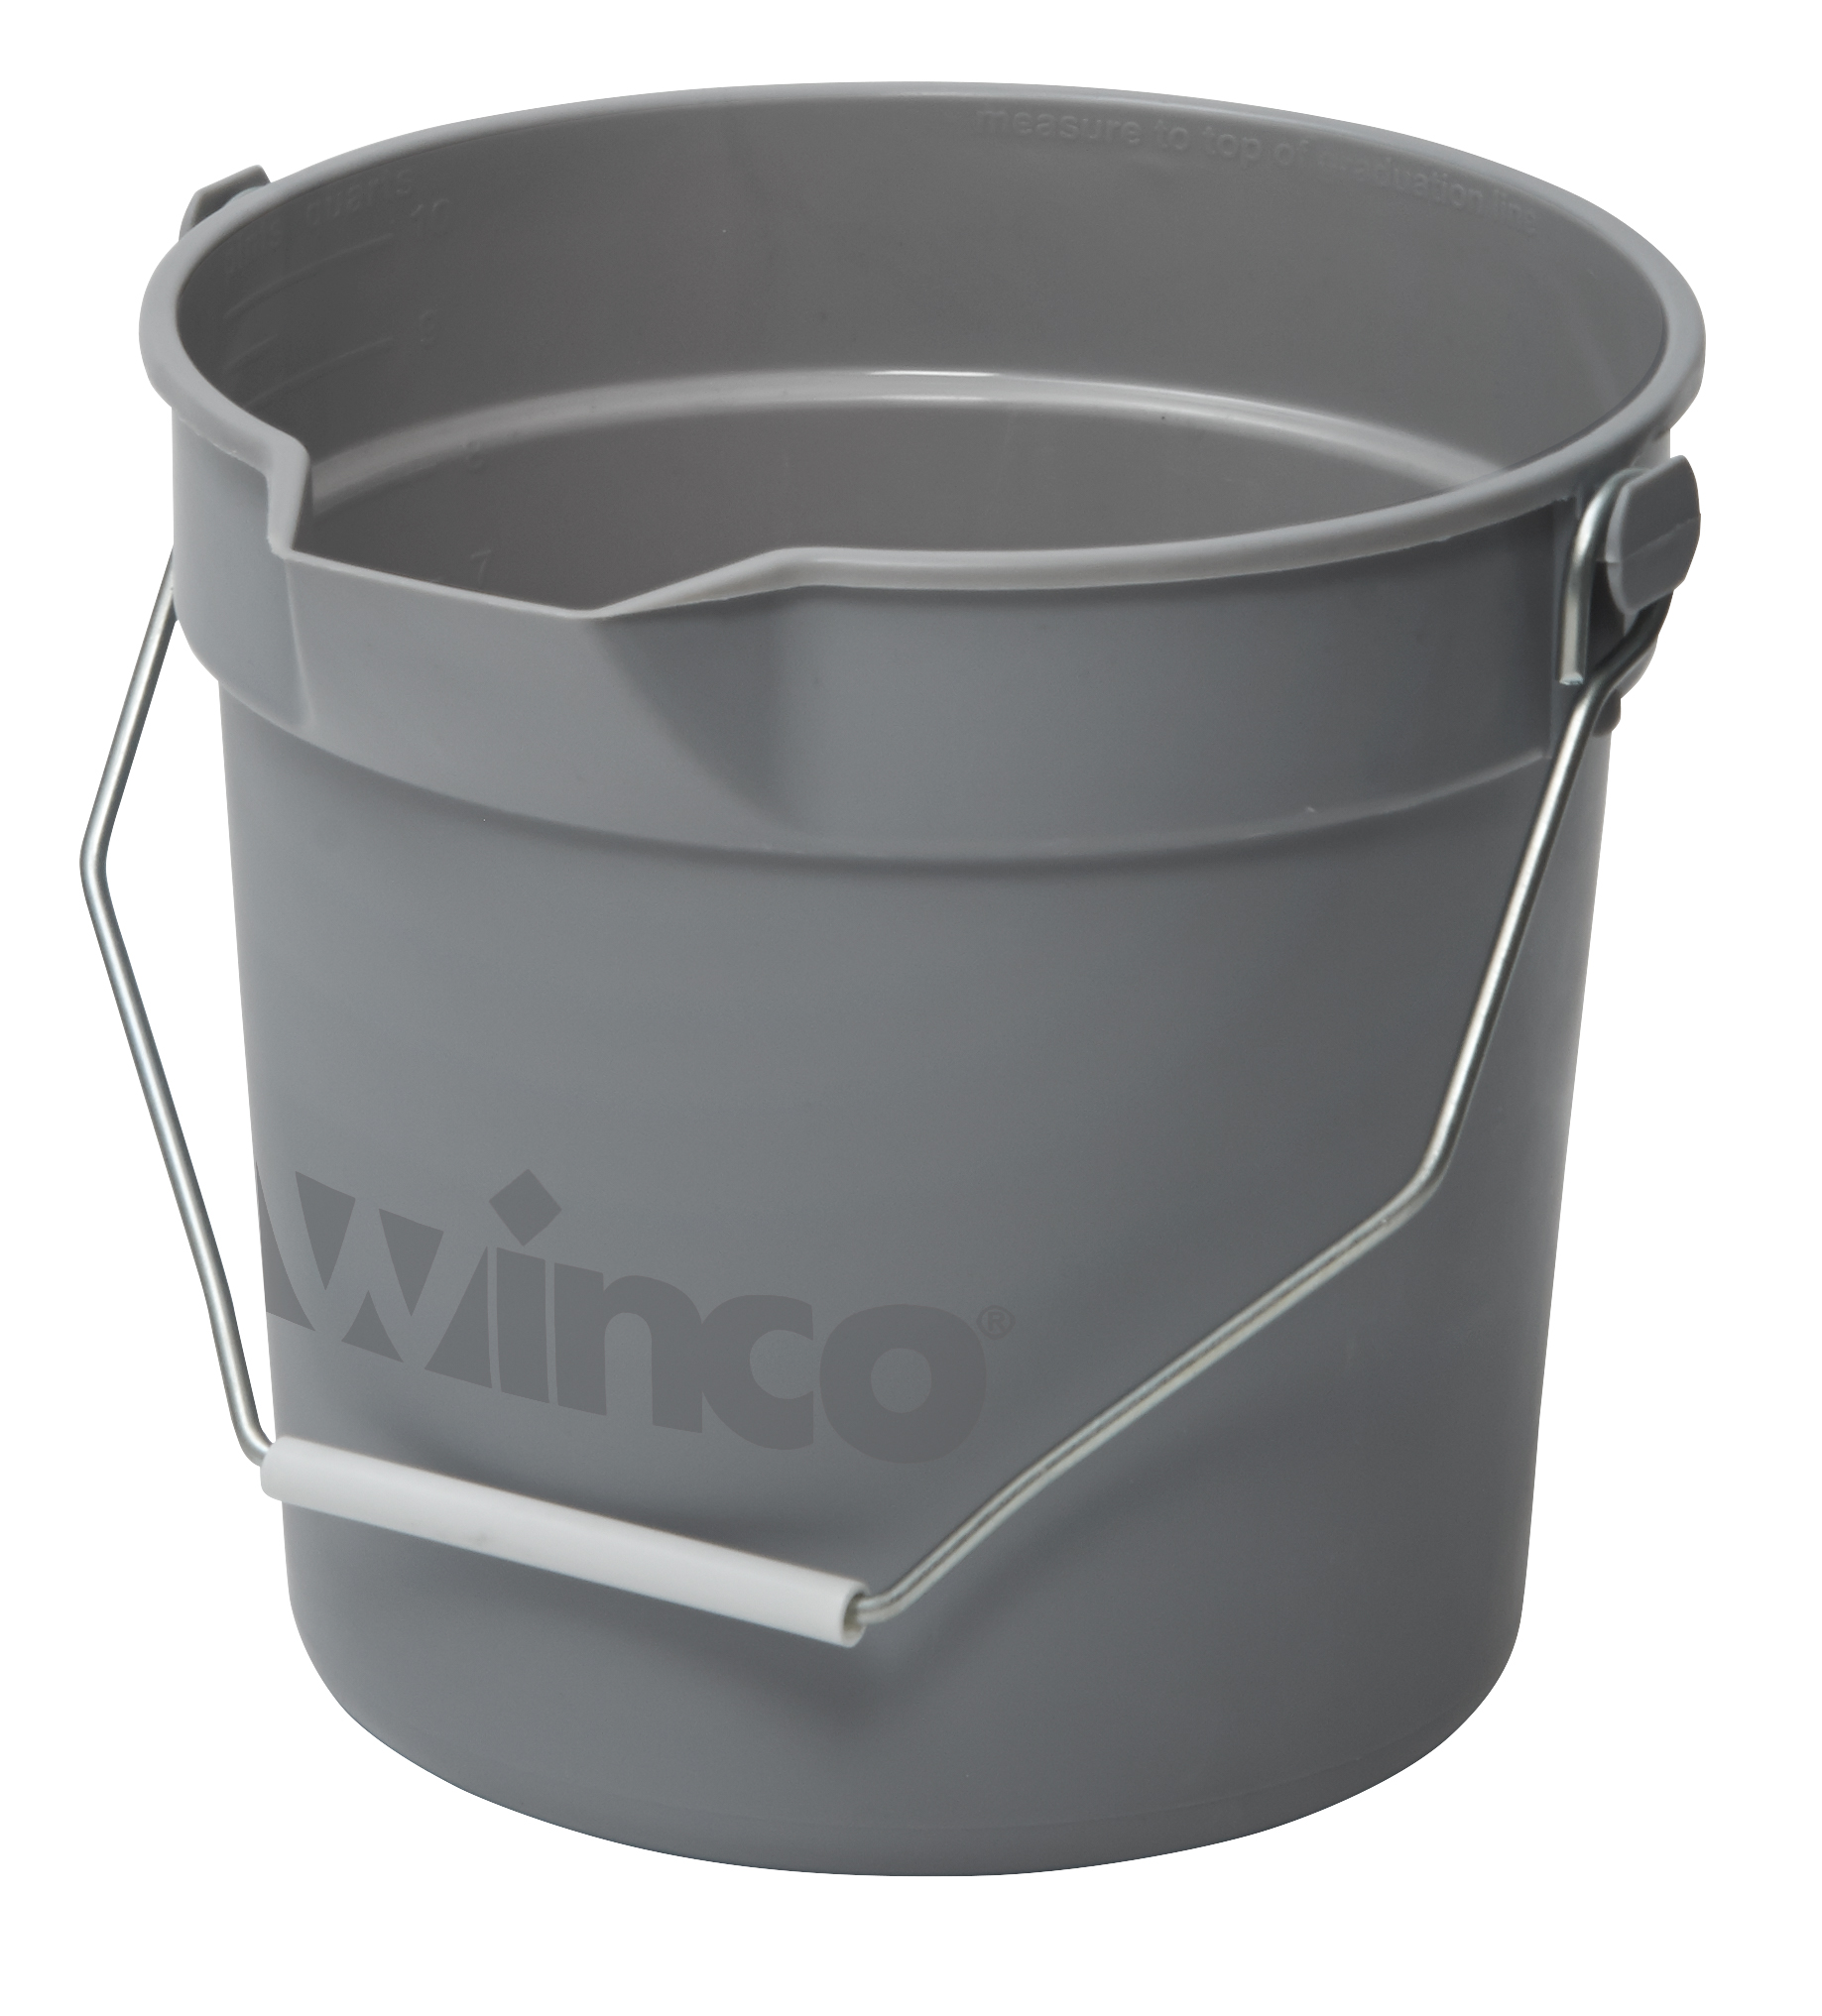 Winco UPP-14G janitorial accessories